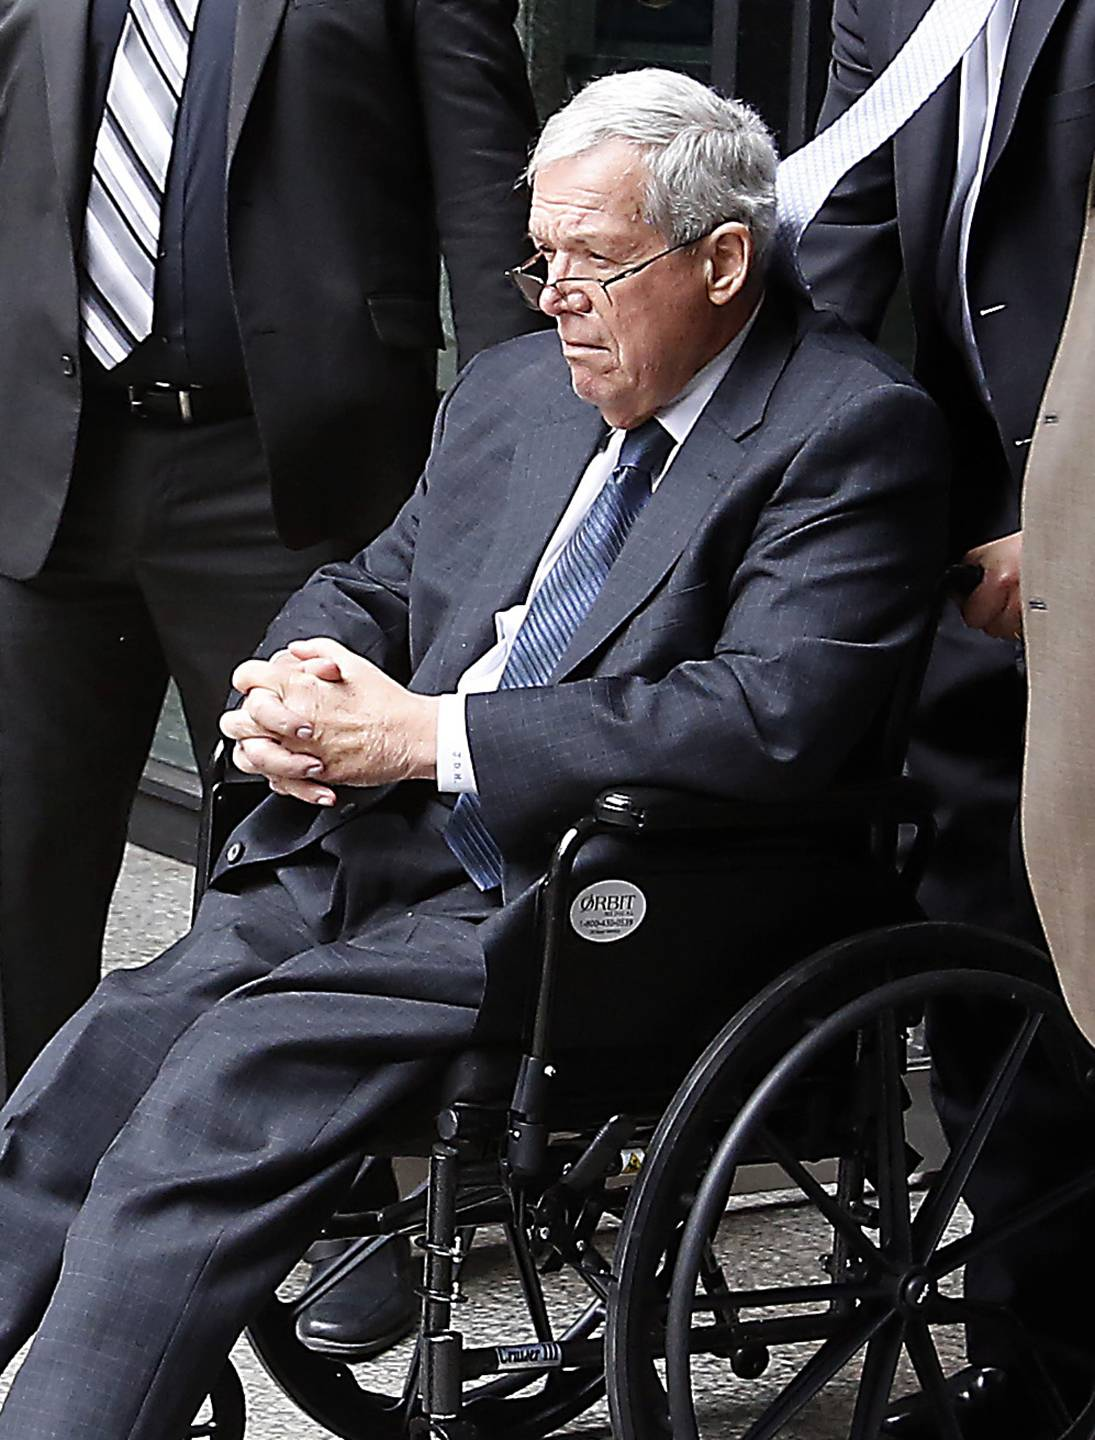 Hastert's state lawmaker pension checks continue, for now